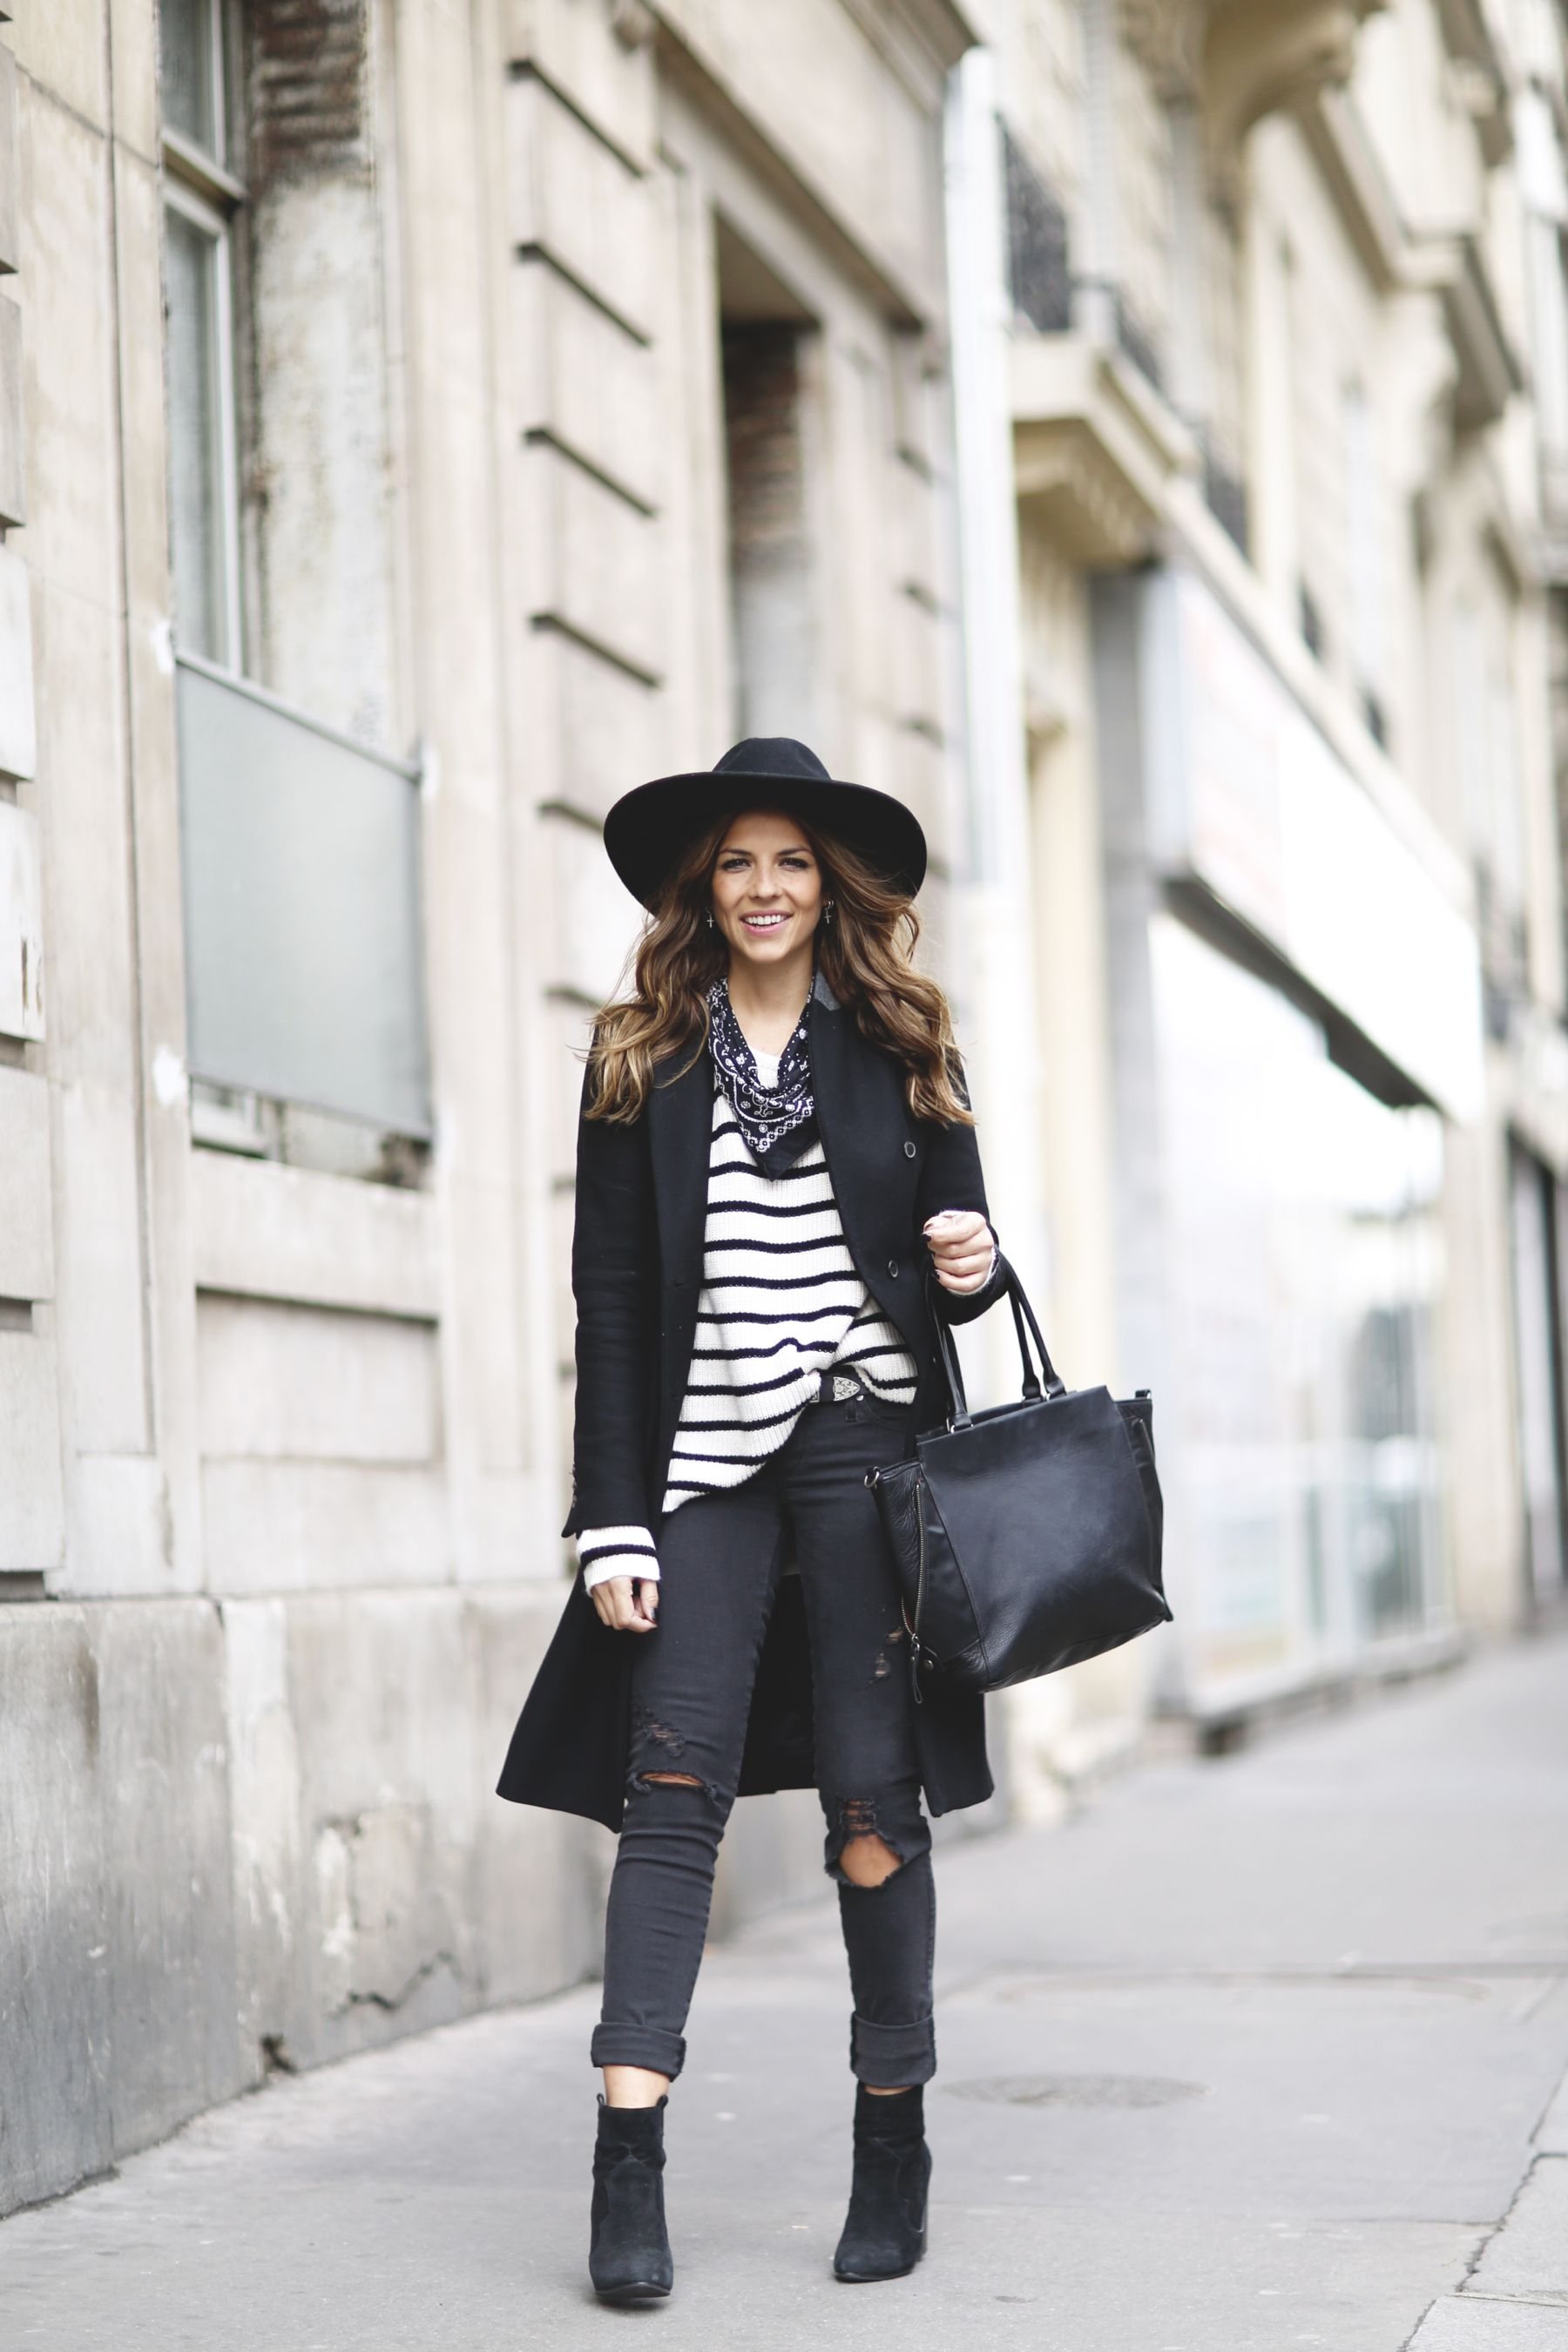 For a cute fall outfit, wear a simple horizontal striped tee with a black overcoat and distressed jeans like Natalia Cabezas. This look is edgy and alternative, and we love it. Coat: Zara, Sweater: Pull&Bear, Jeans: Diesel via Asos, Boots: Revolve Clothing, Bandana: Levi´s, Hat: Goorin Bros, Bag: Nat&Nin.